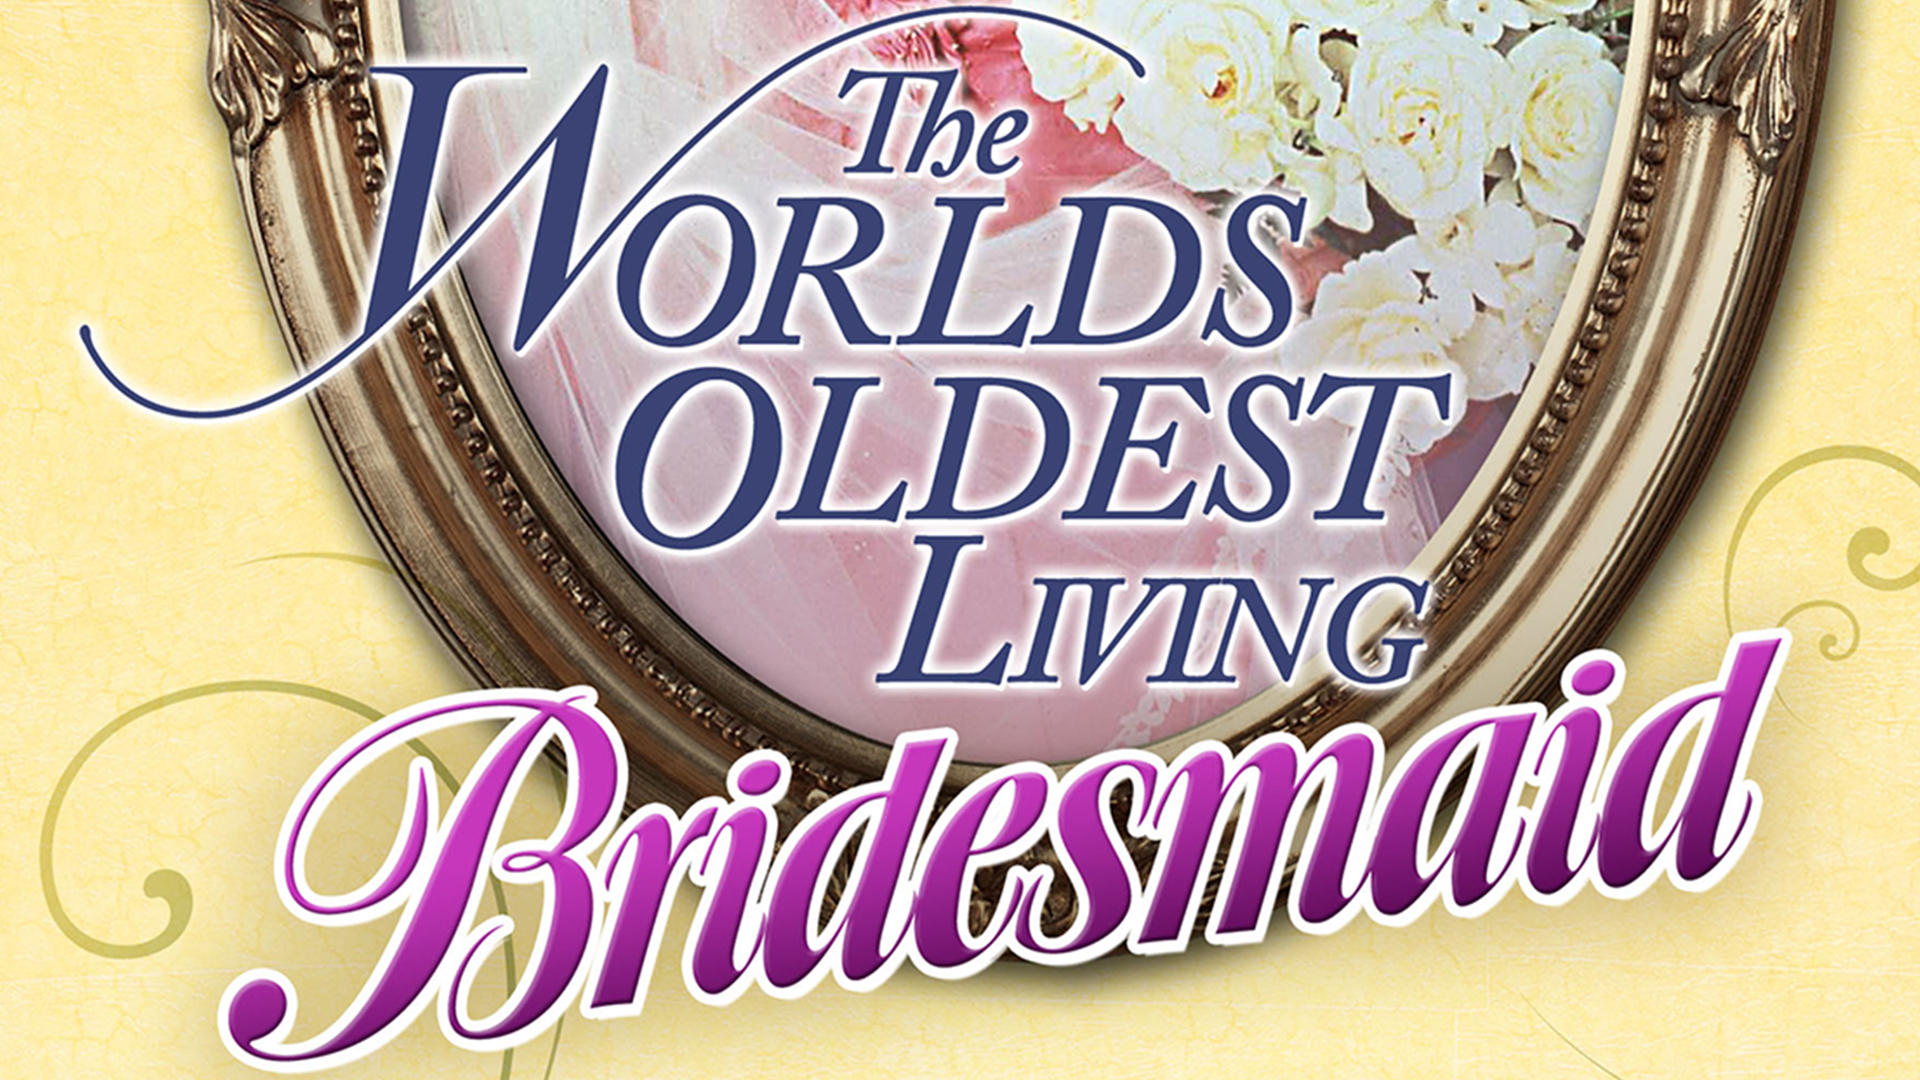 The World's Oldest Living Bridesmaid